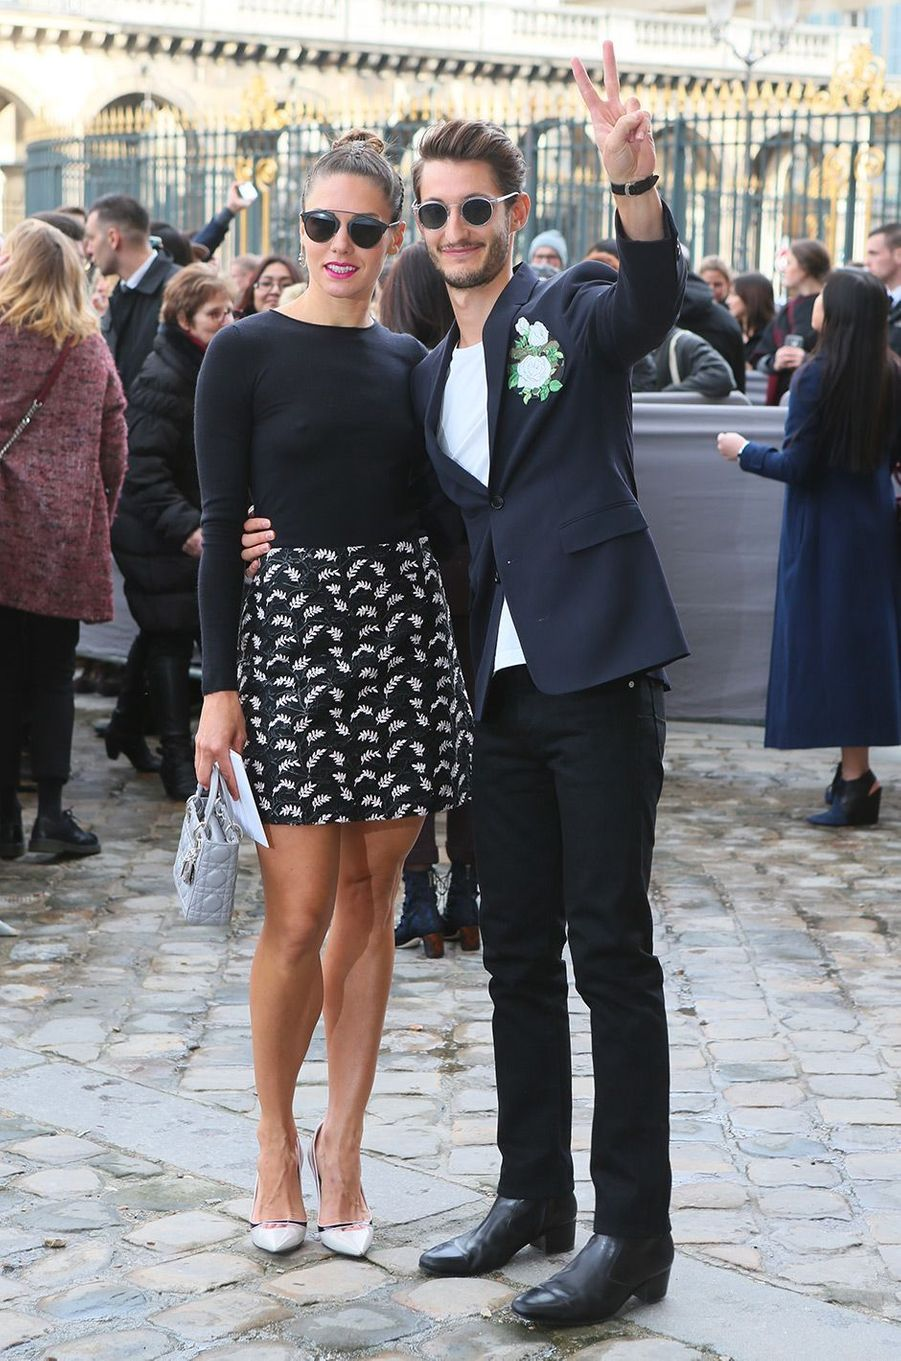 Pierre Niney et Natasha Andrews en mars 2016